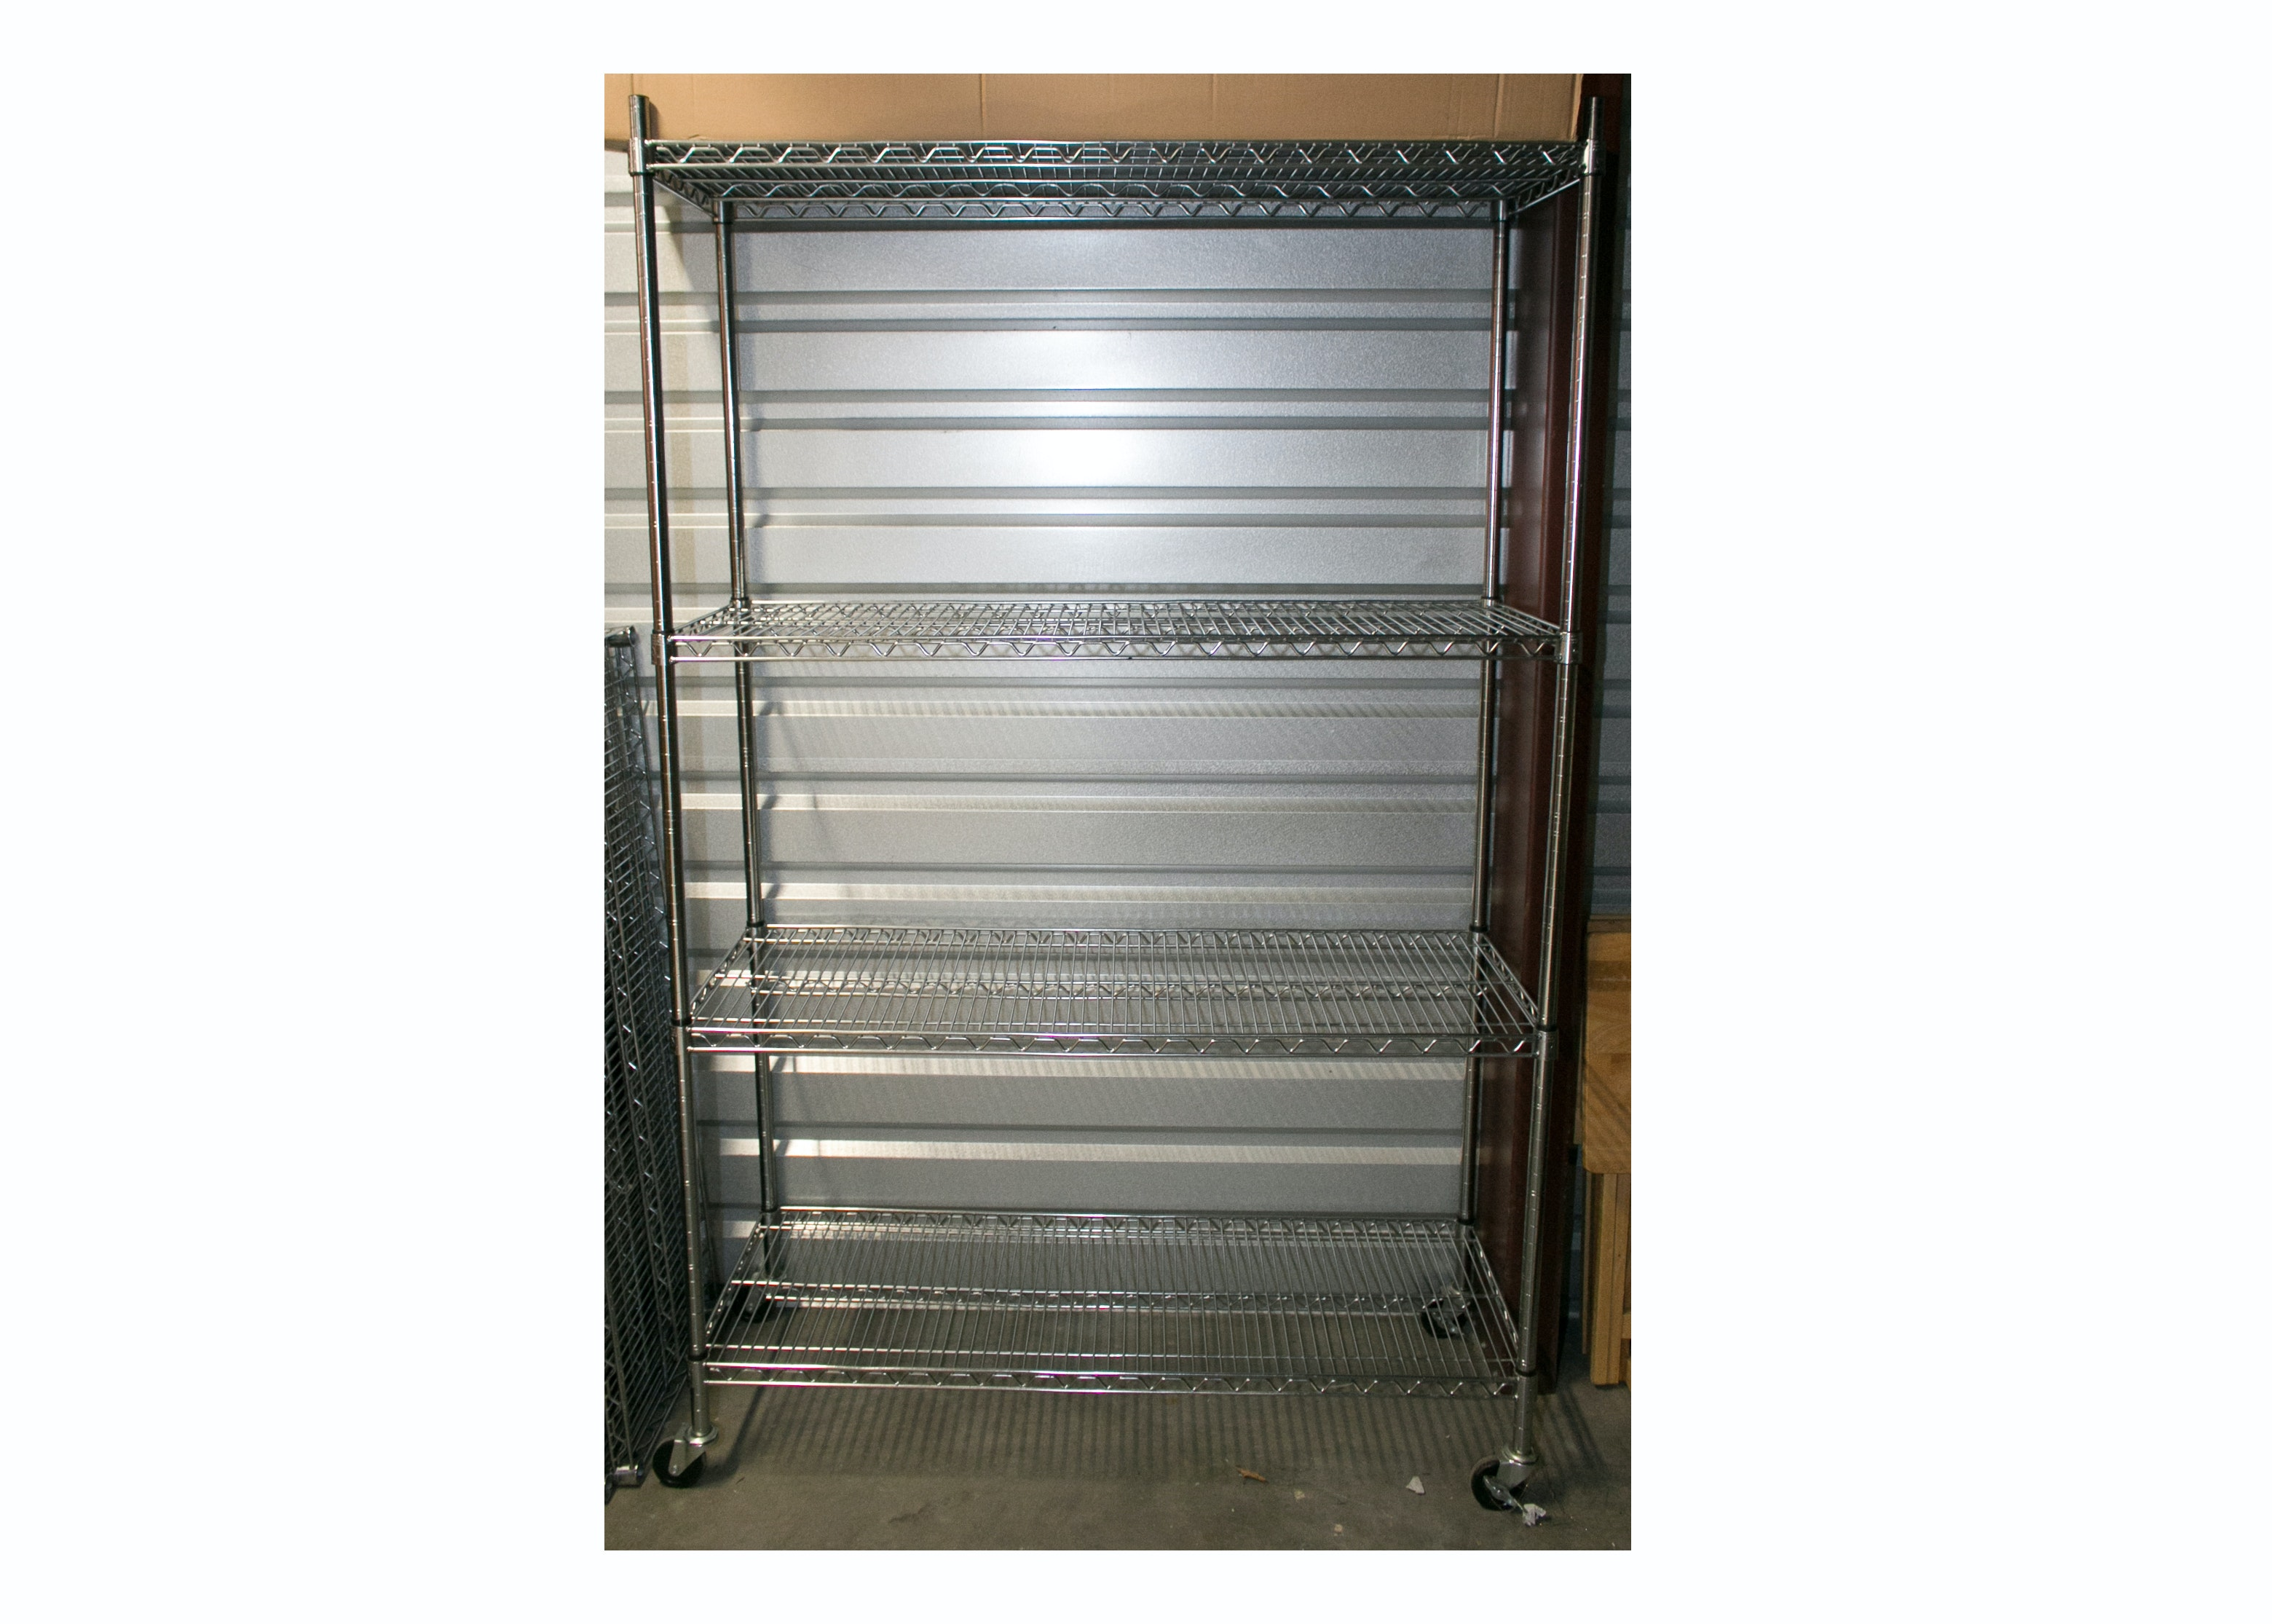 Wire Shelving Unit with Locking Casters by Seville Classics Inc.